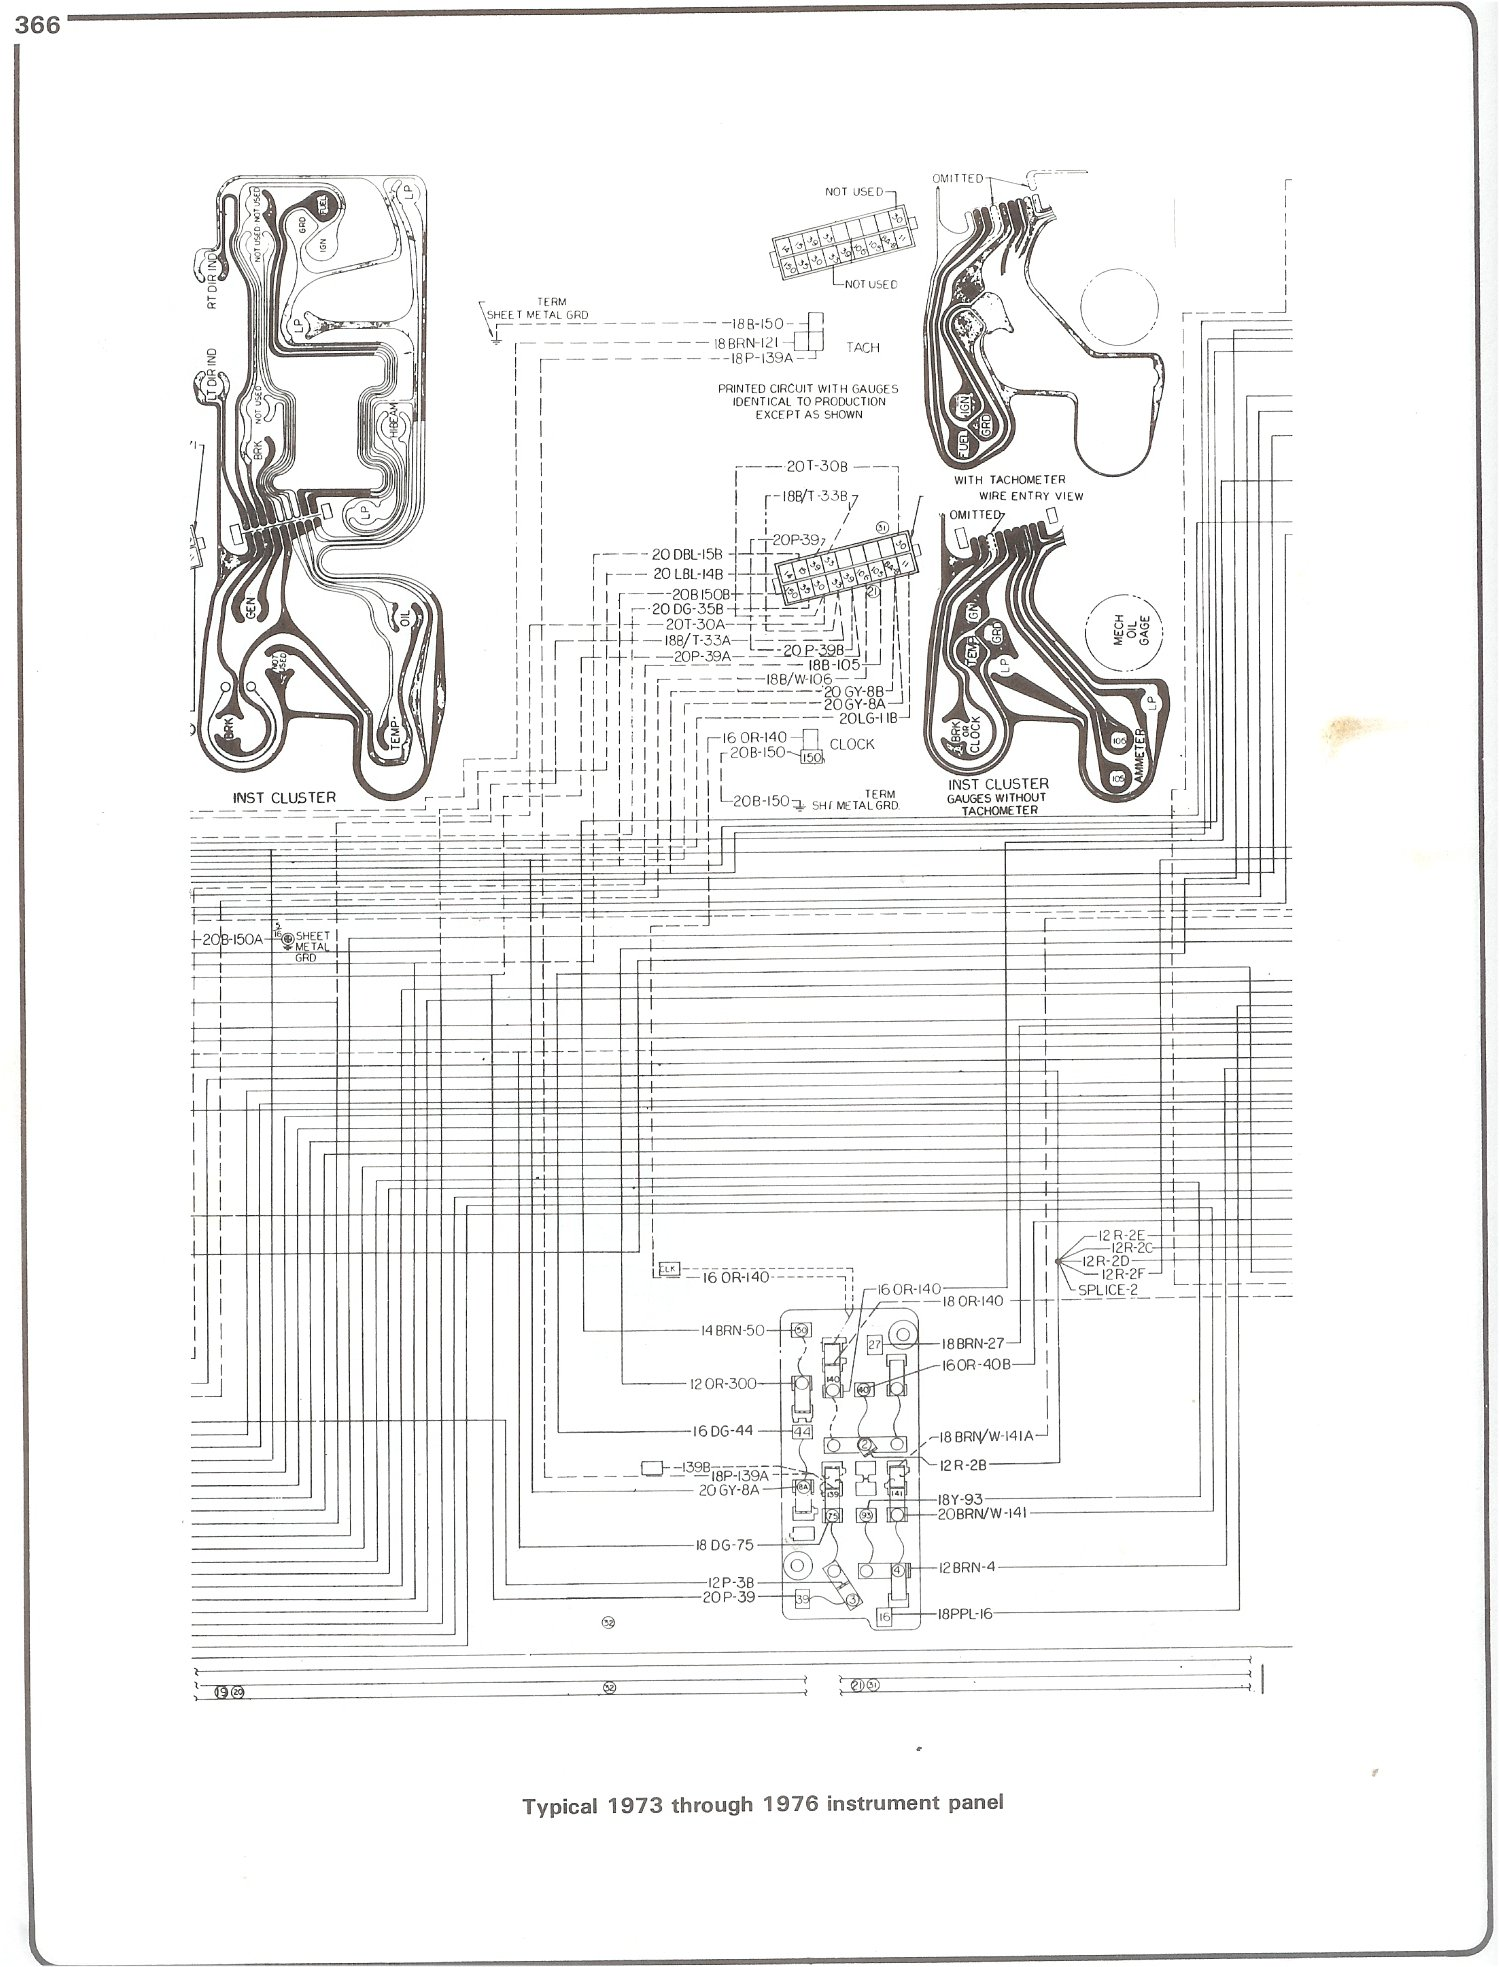 73 76_instrument complete 73 87 wiring diagrams 1984 Chevy Truck Wiring Diagrams at gsmportal.co